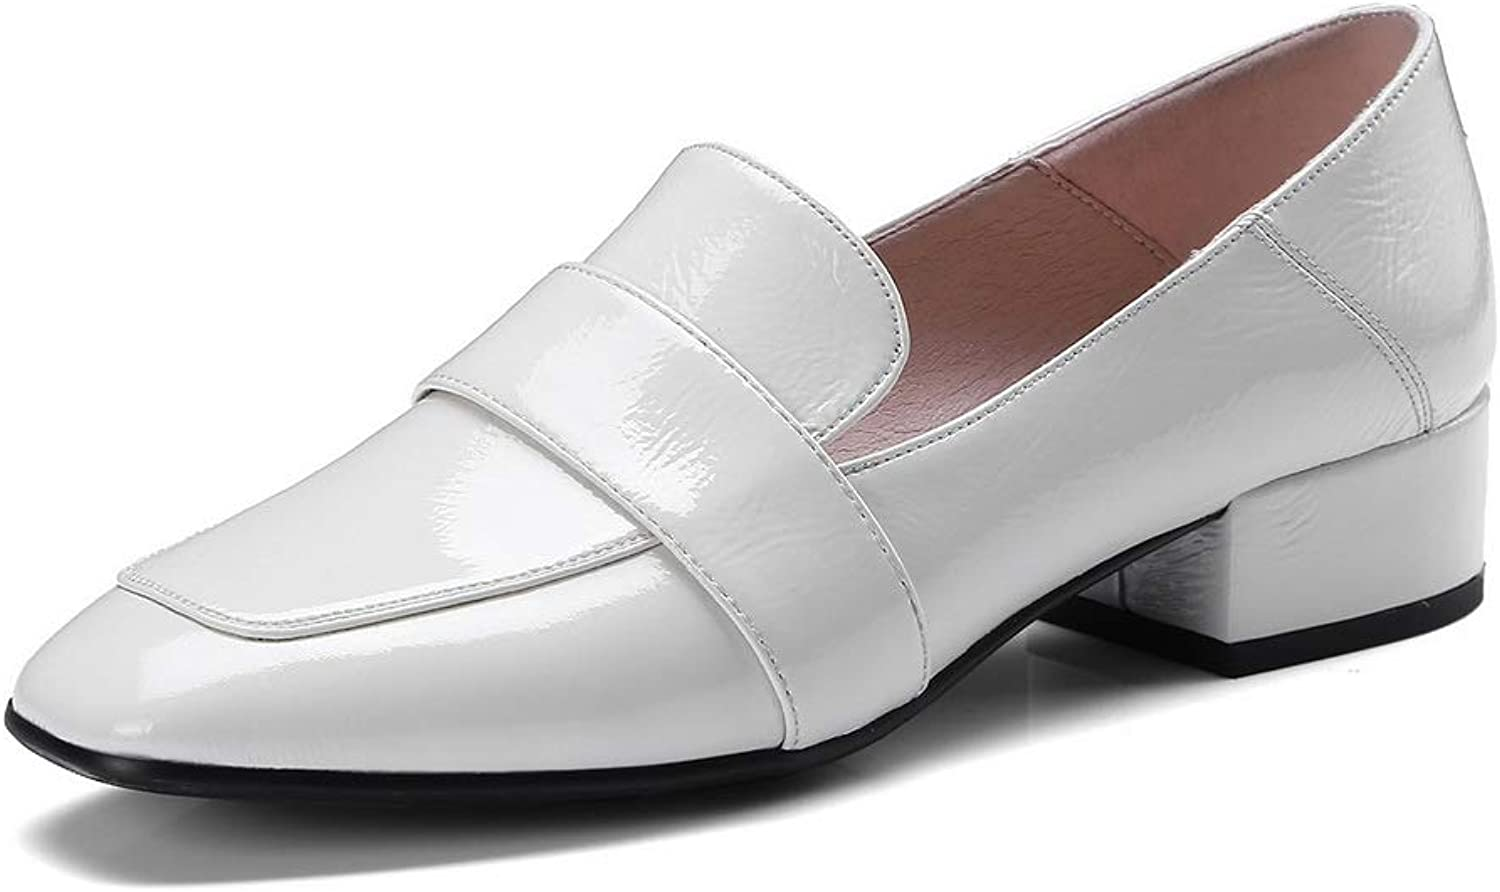 AN Womens Chunky Heels Patent-Leather Pumps shoes DGU00900